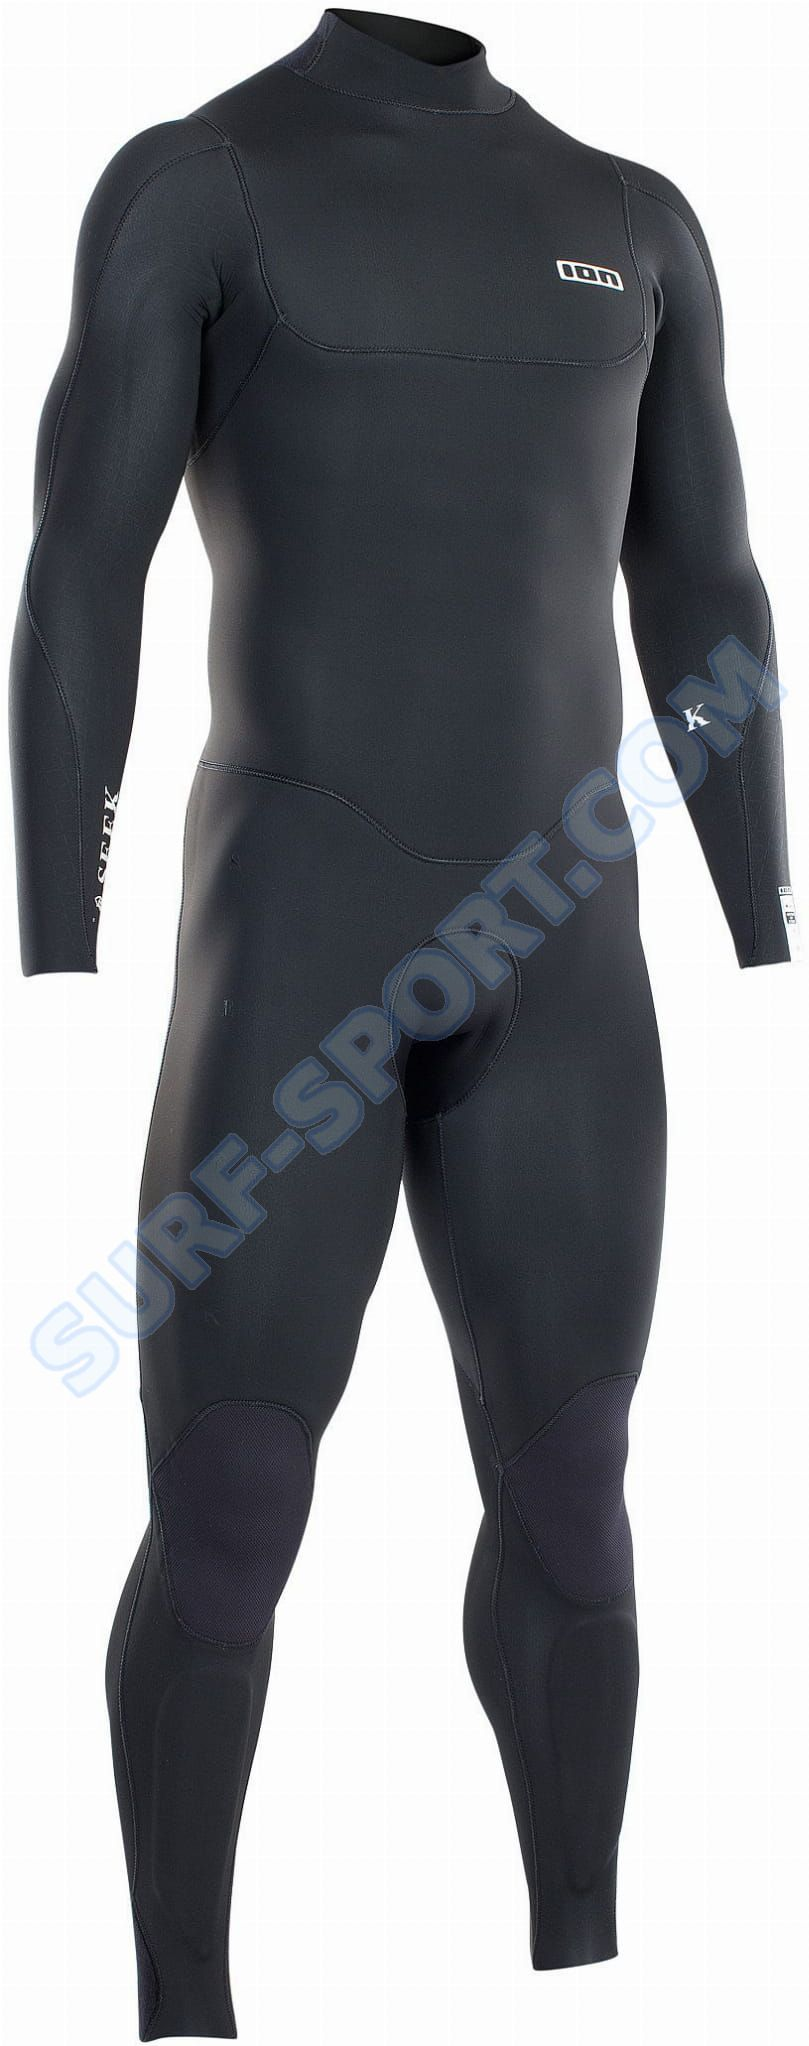 48212-4426_Pianka_ION_2021_Seek_Core_BackZip_Black.jpg